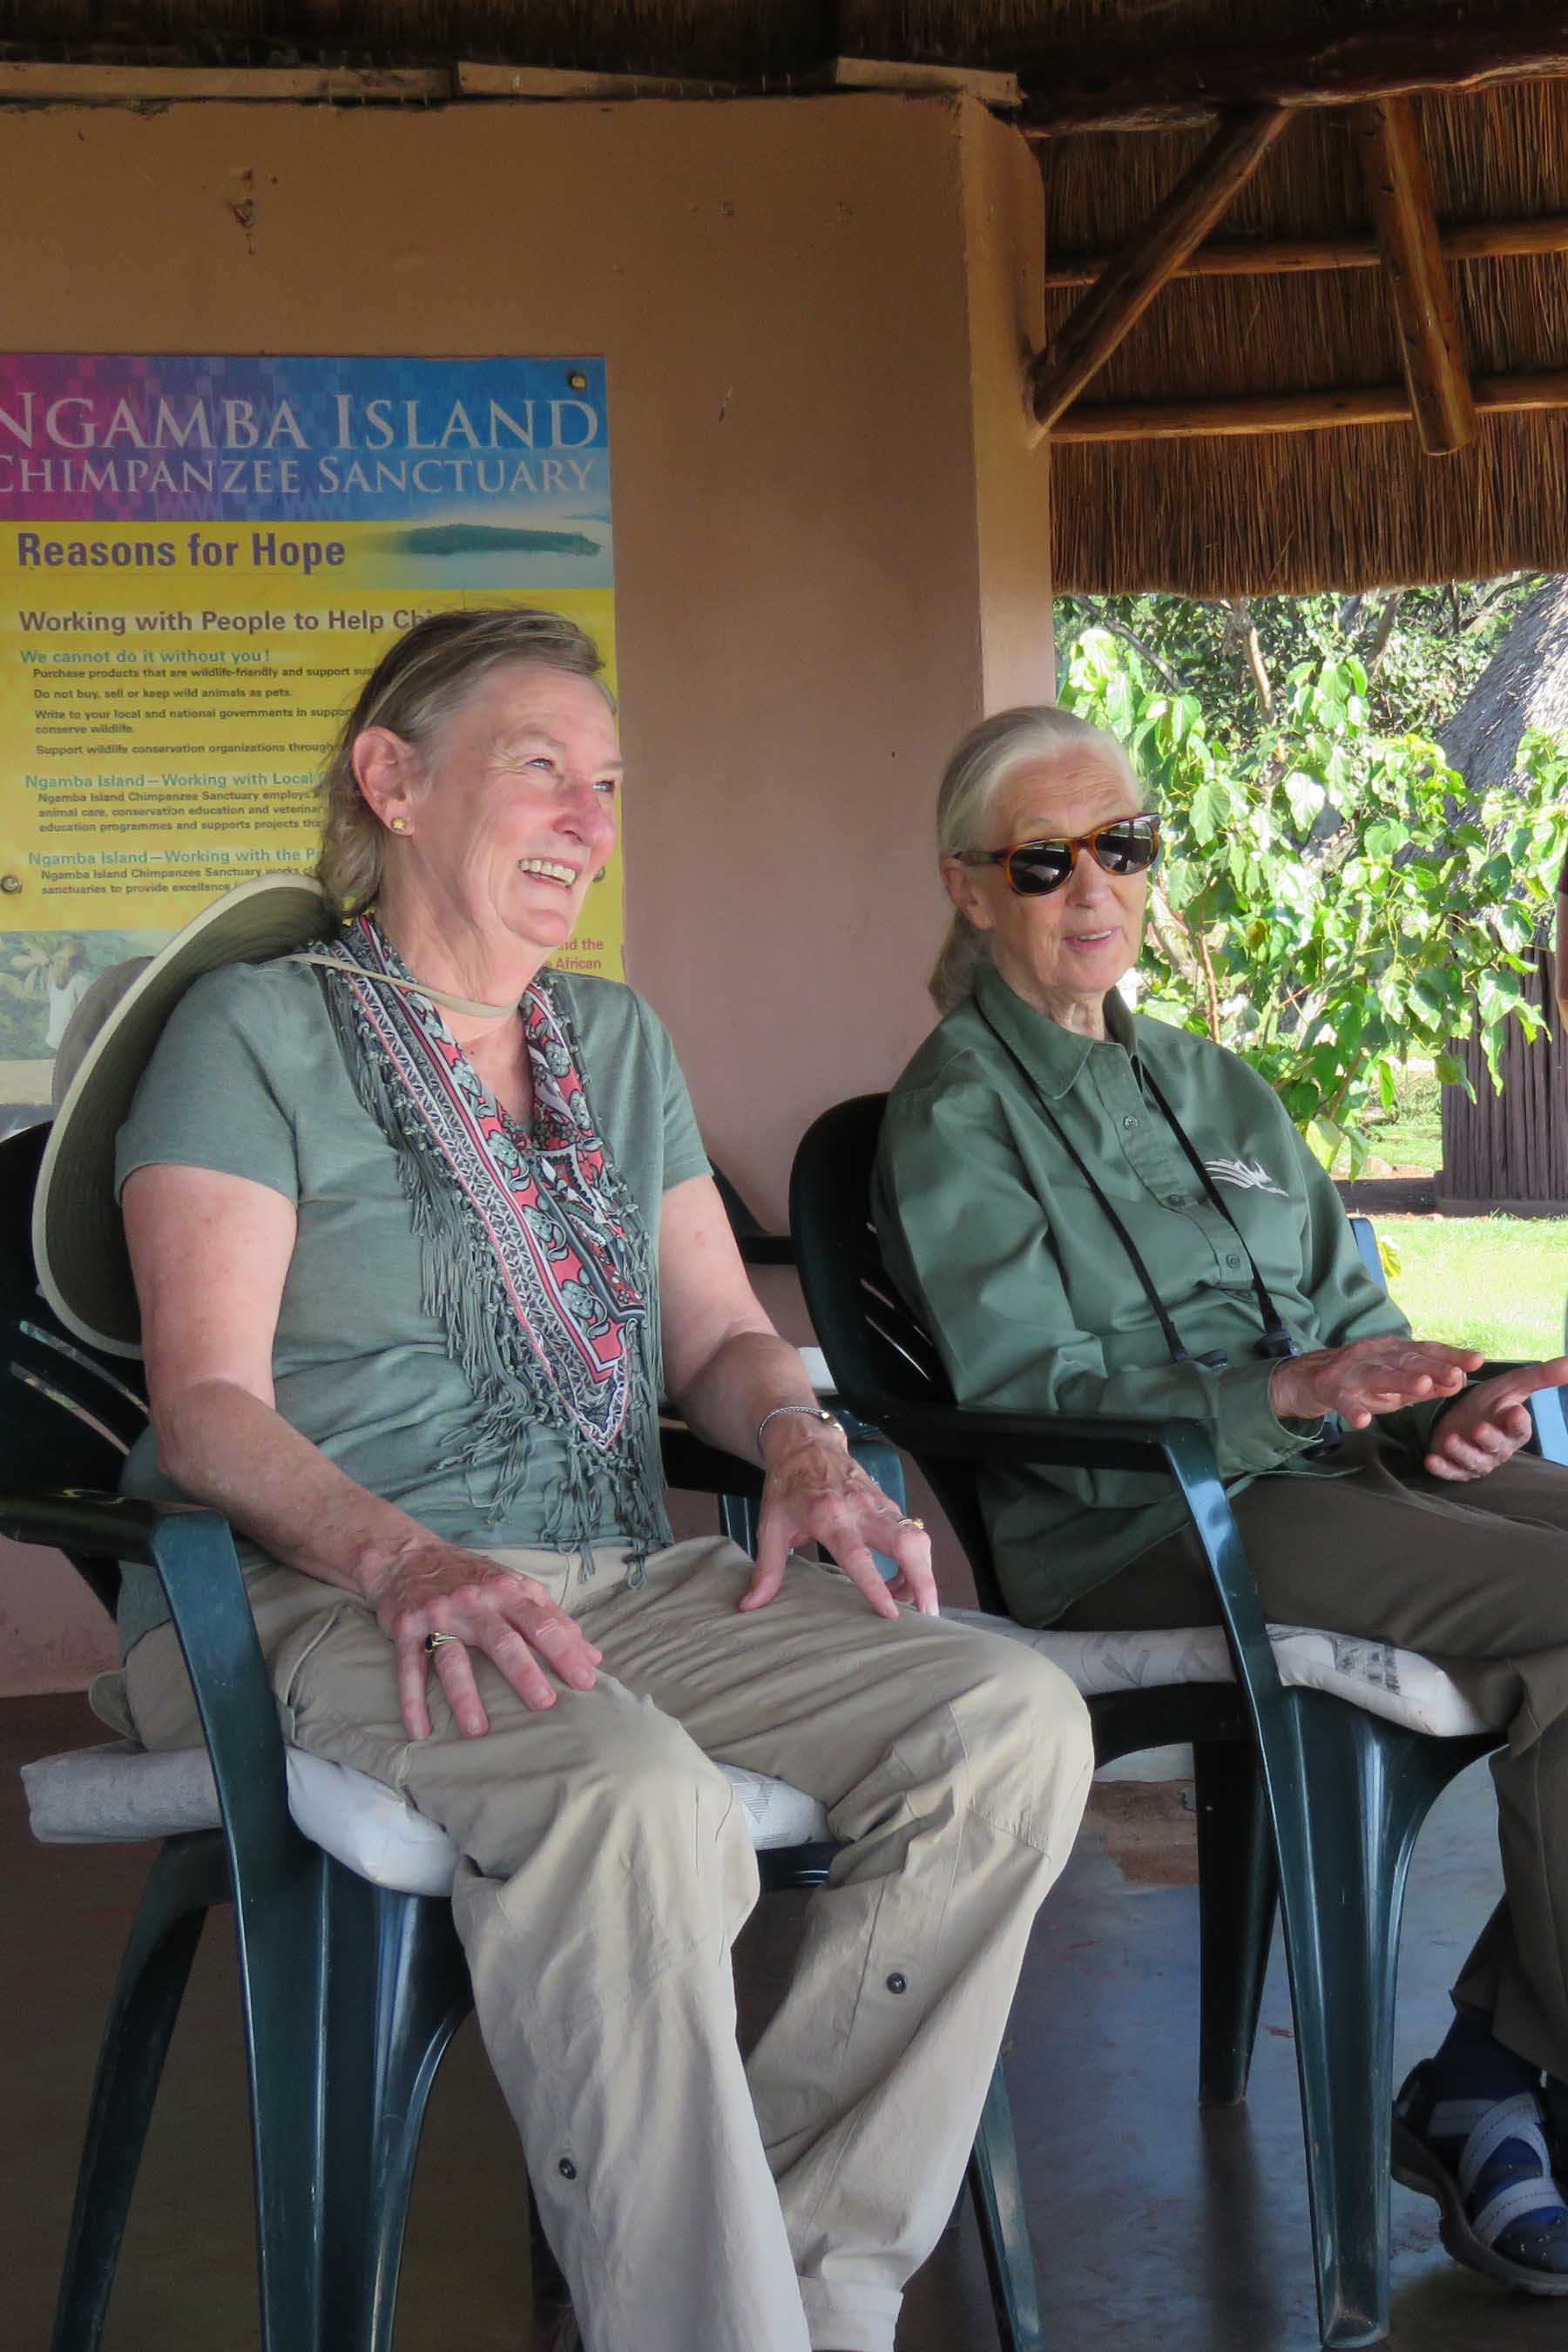 Dr. Merrick relaxes with Dr. Jane Goodall at Ngamba Island Chimpanzee Sanctuary, Uganda, June 2018.